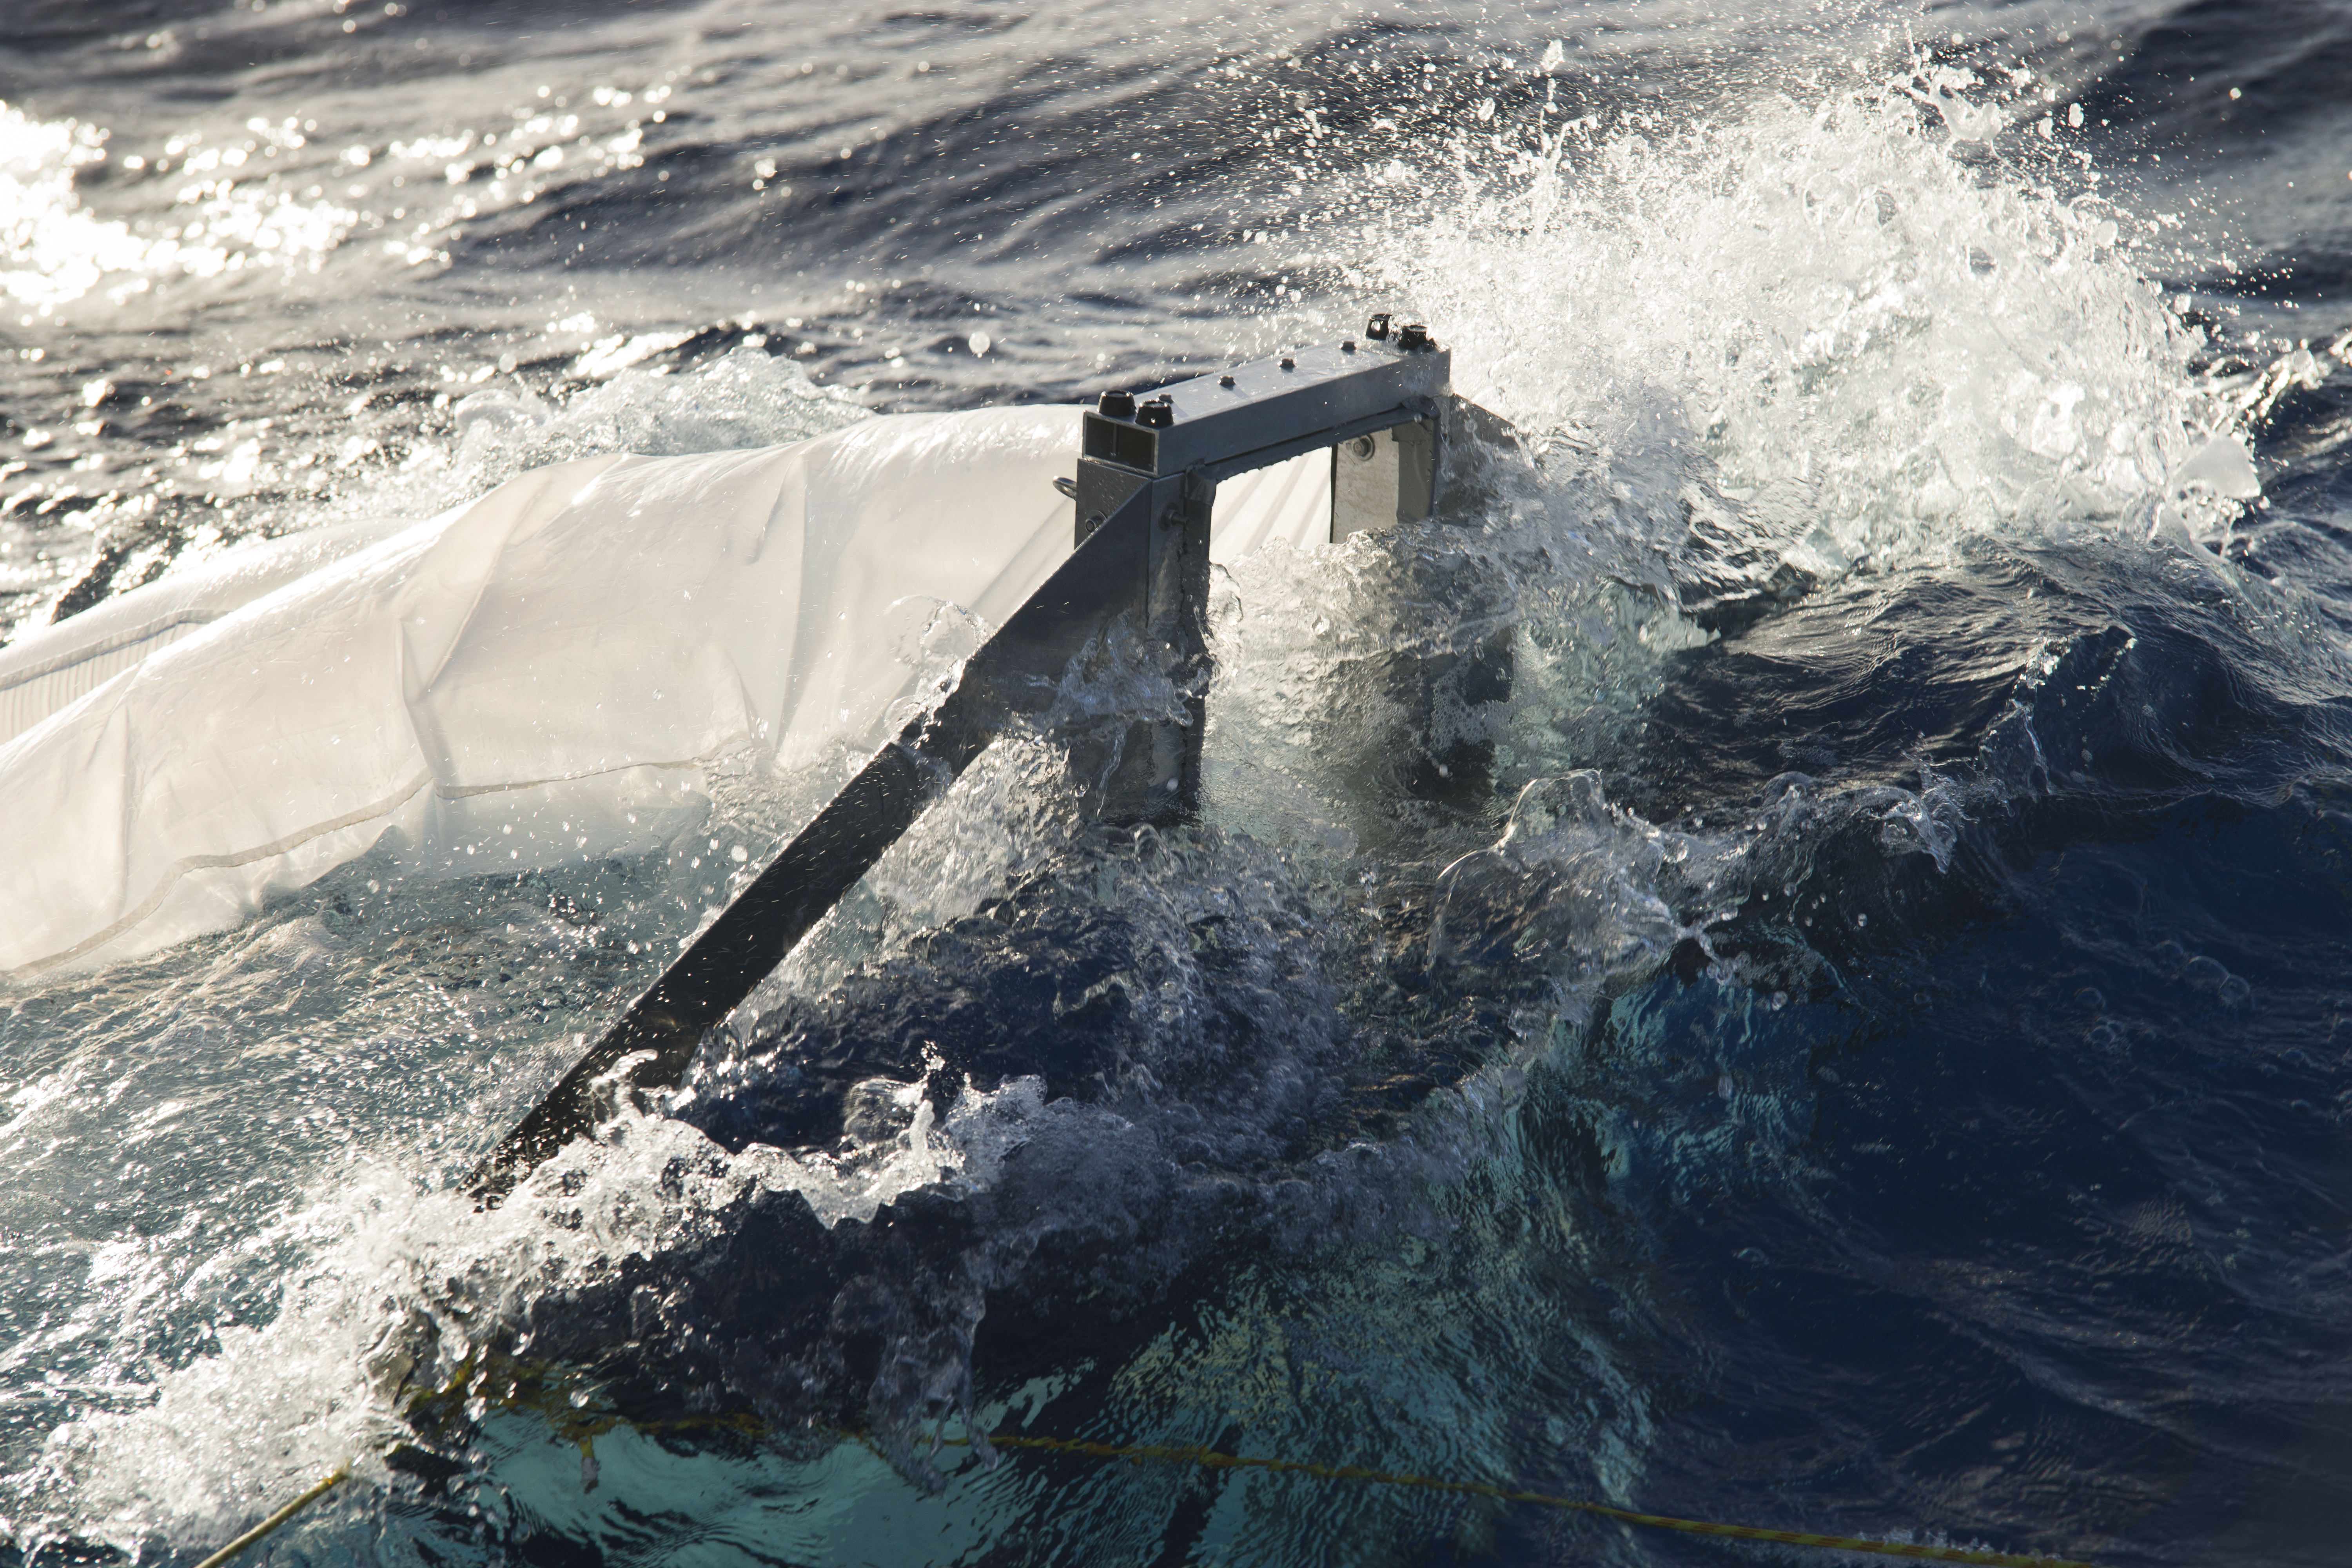 Multi-Level Trawl deployed during Vertical Distribution research expedition.